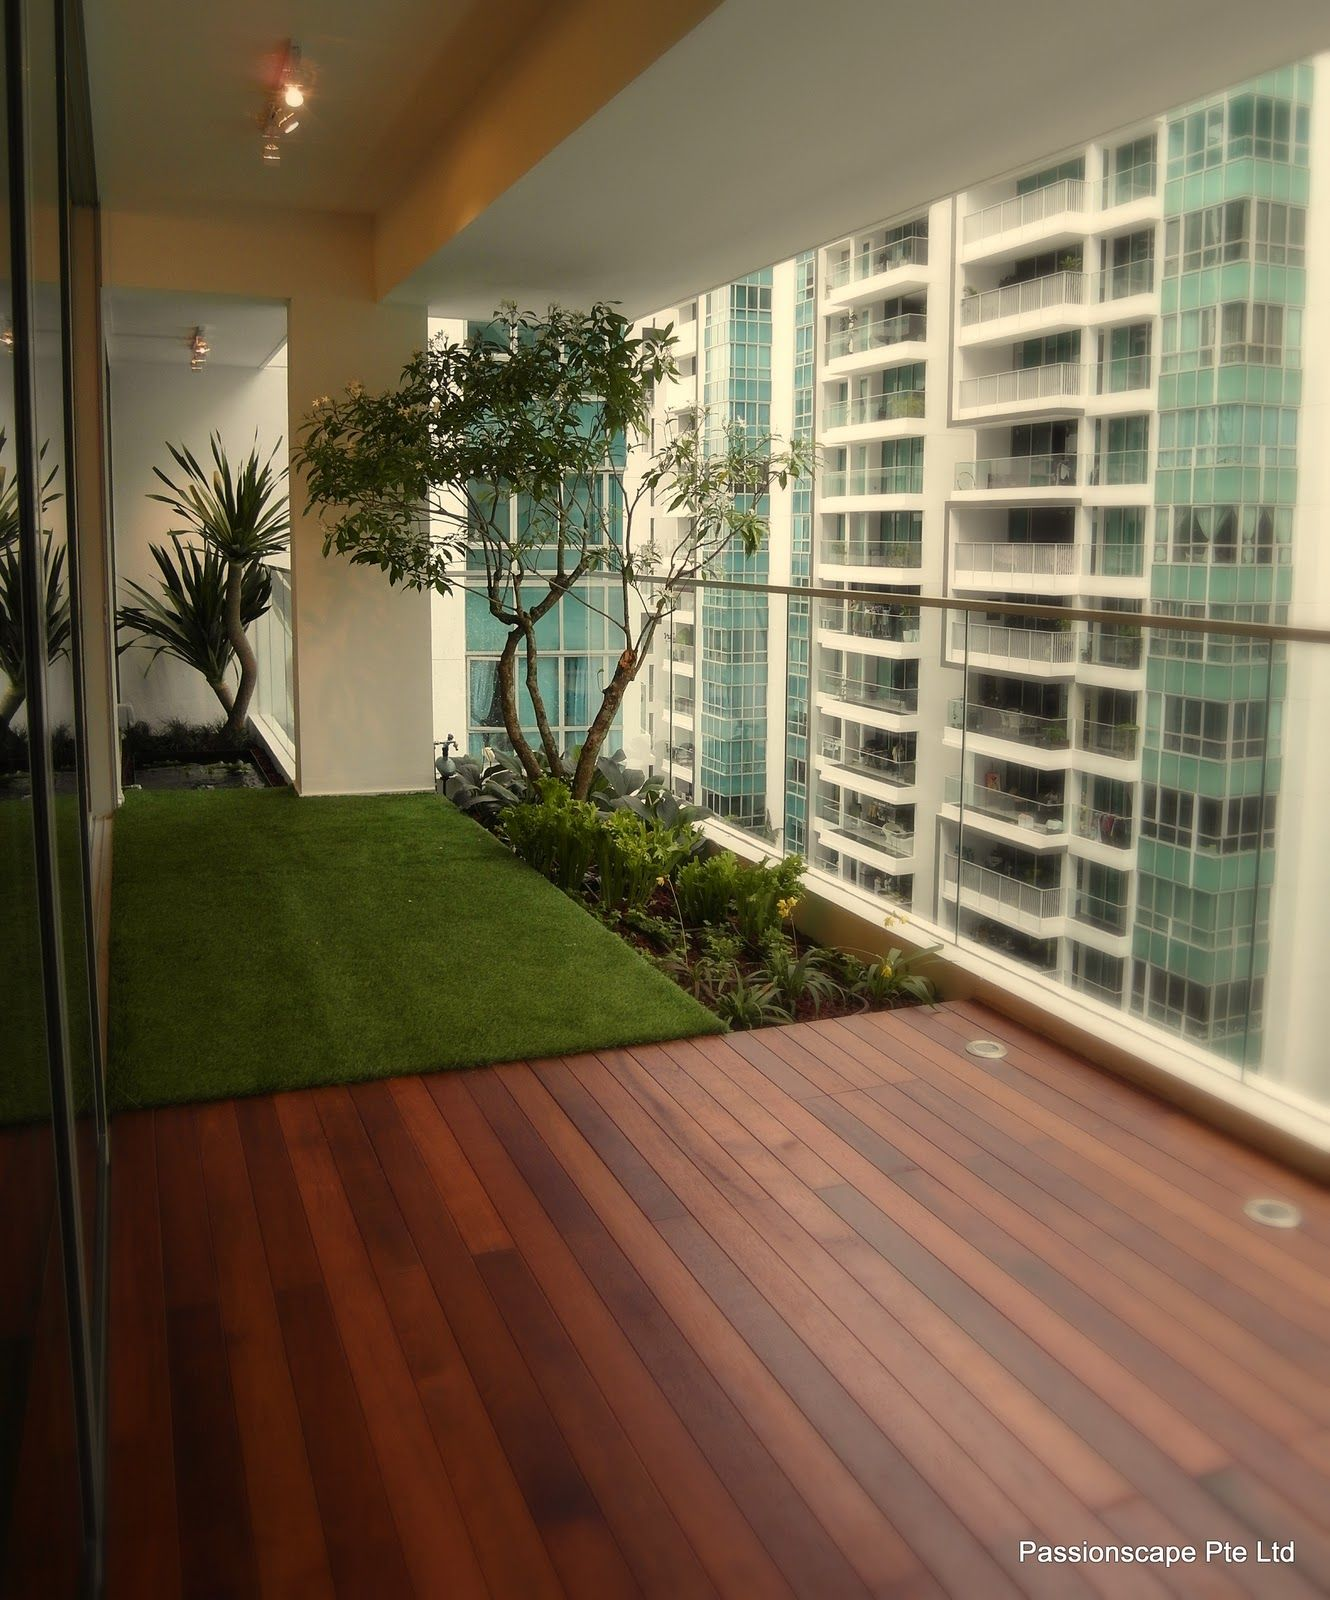 Amazing interior and exterior balcony design ideas interior design - Passionscape Pte Ltd Accentuates Your Interior And Outdoor Area In Exquisite Landscape Designs Our Awesome Balconynice